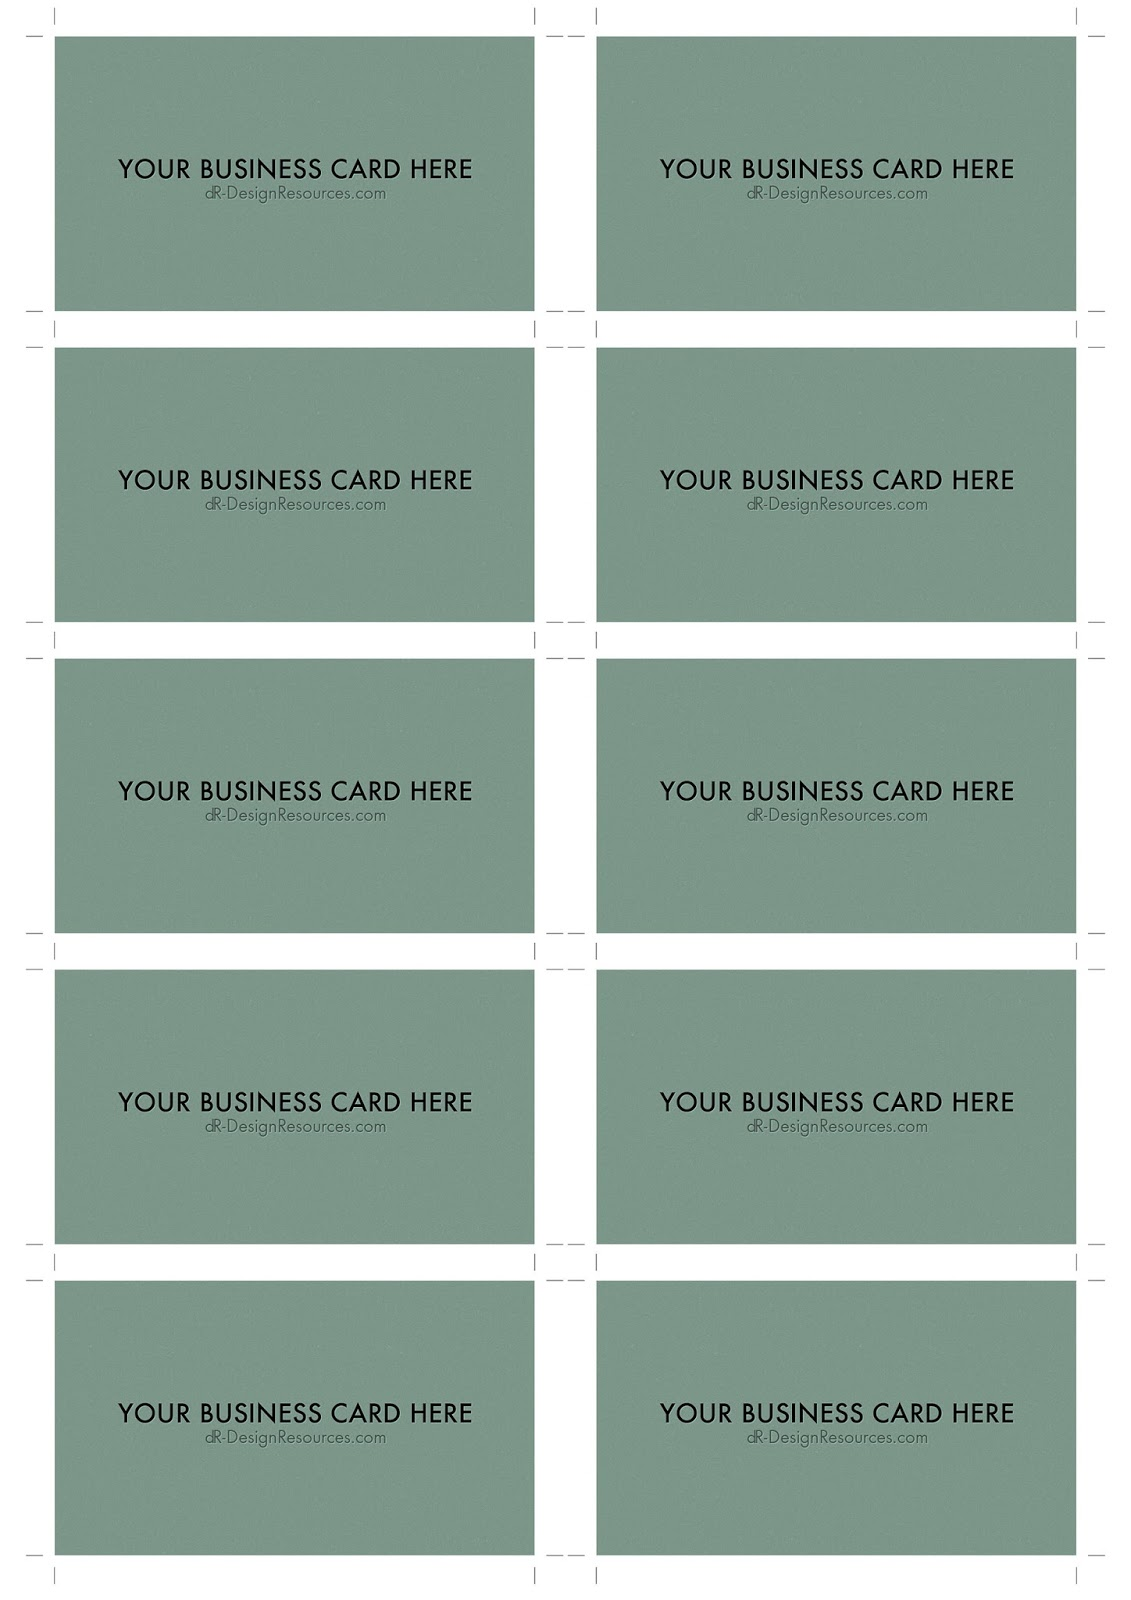 10 business card template business card design for Photo business card template